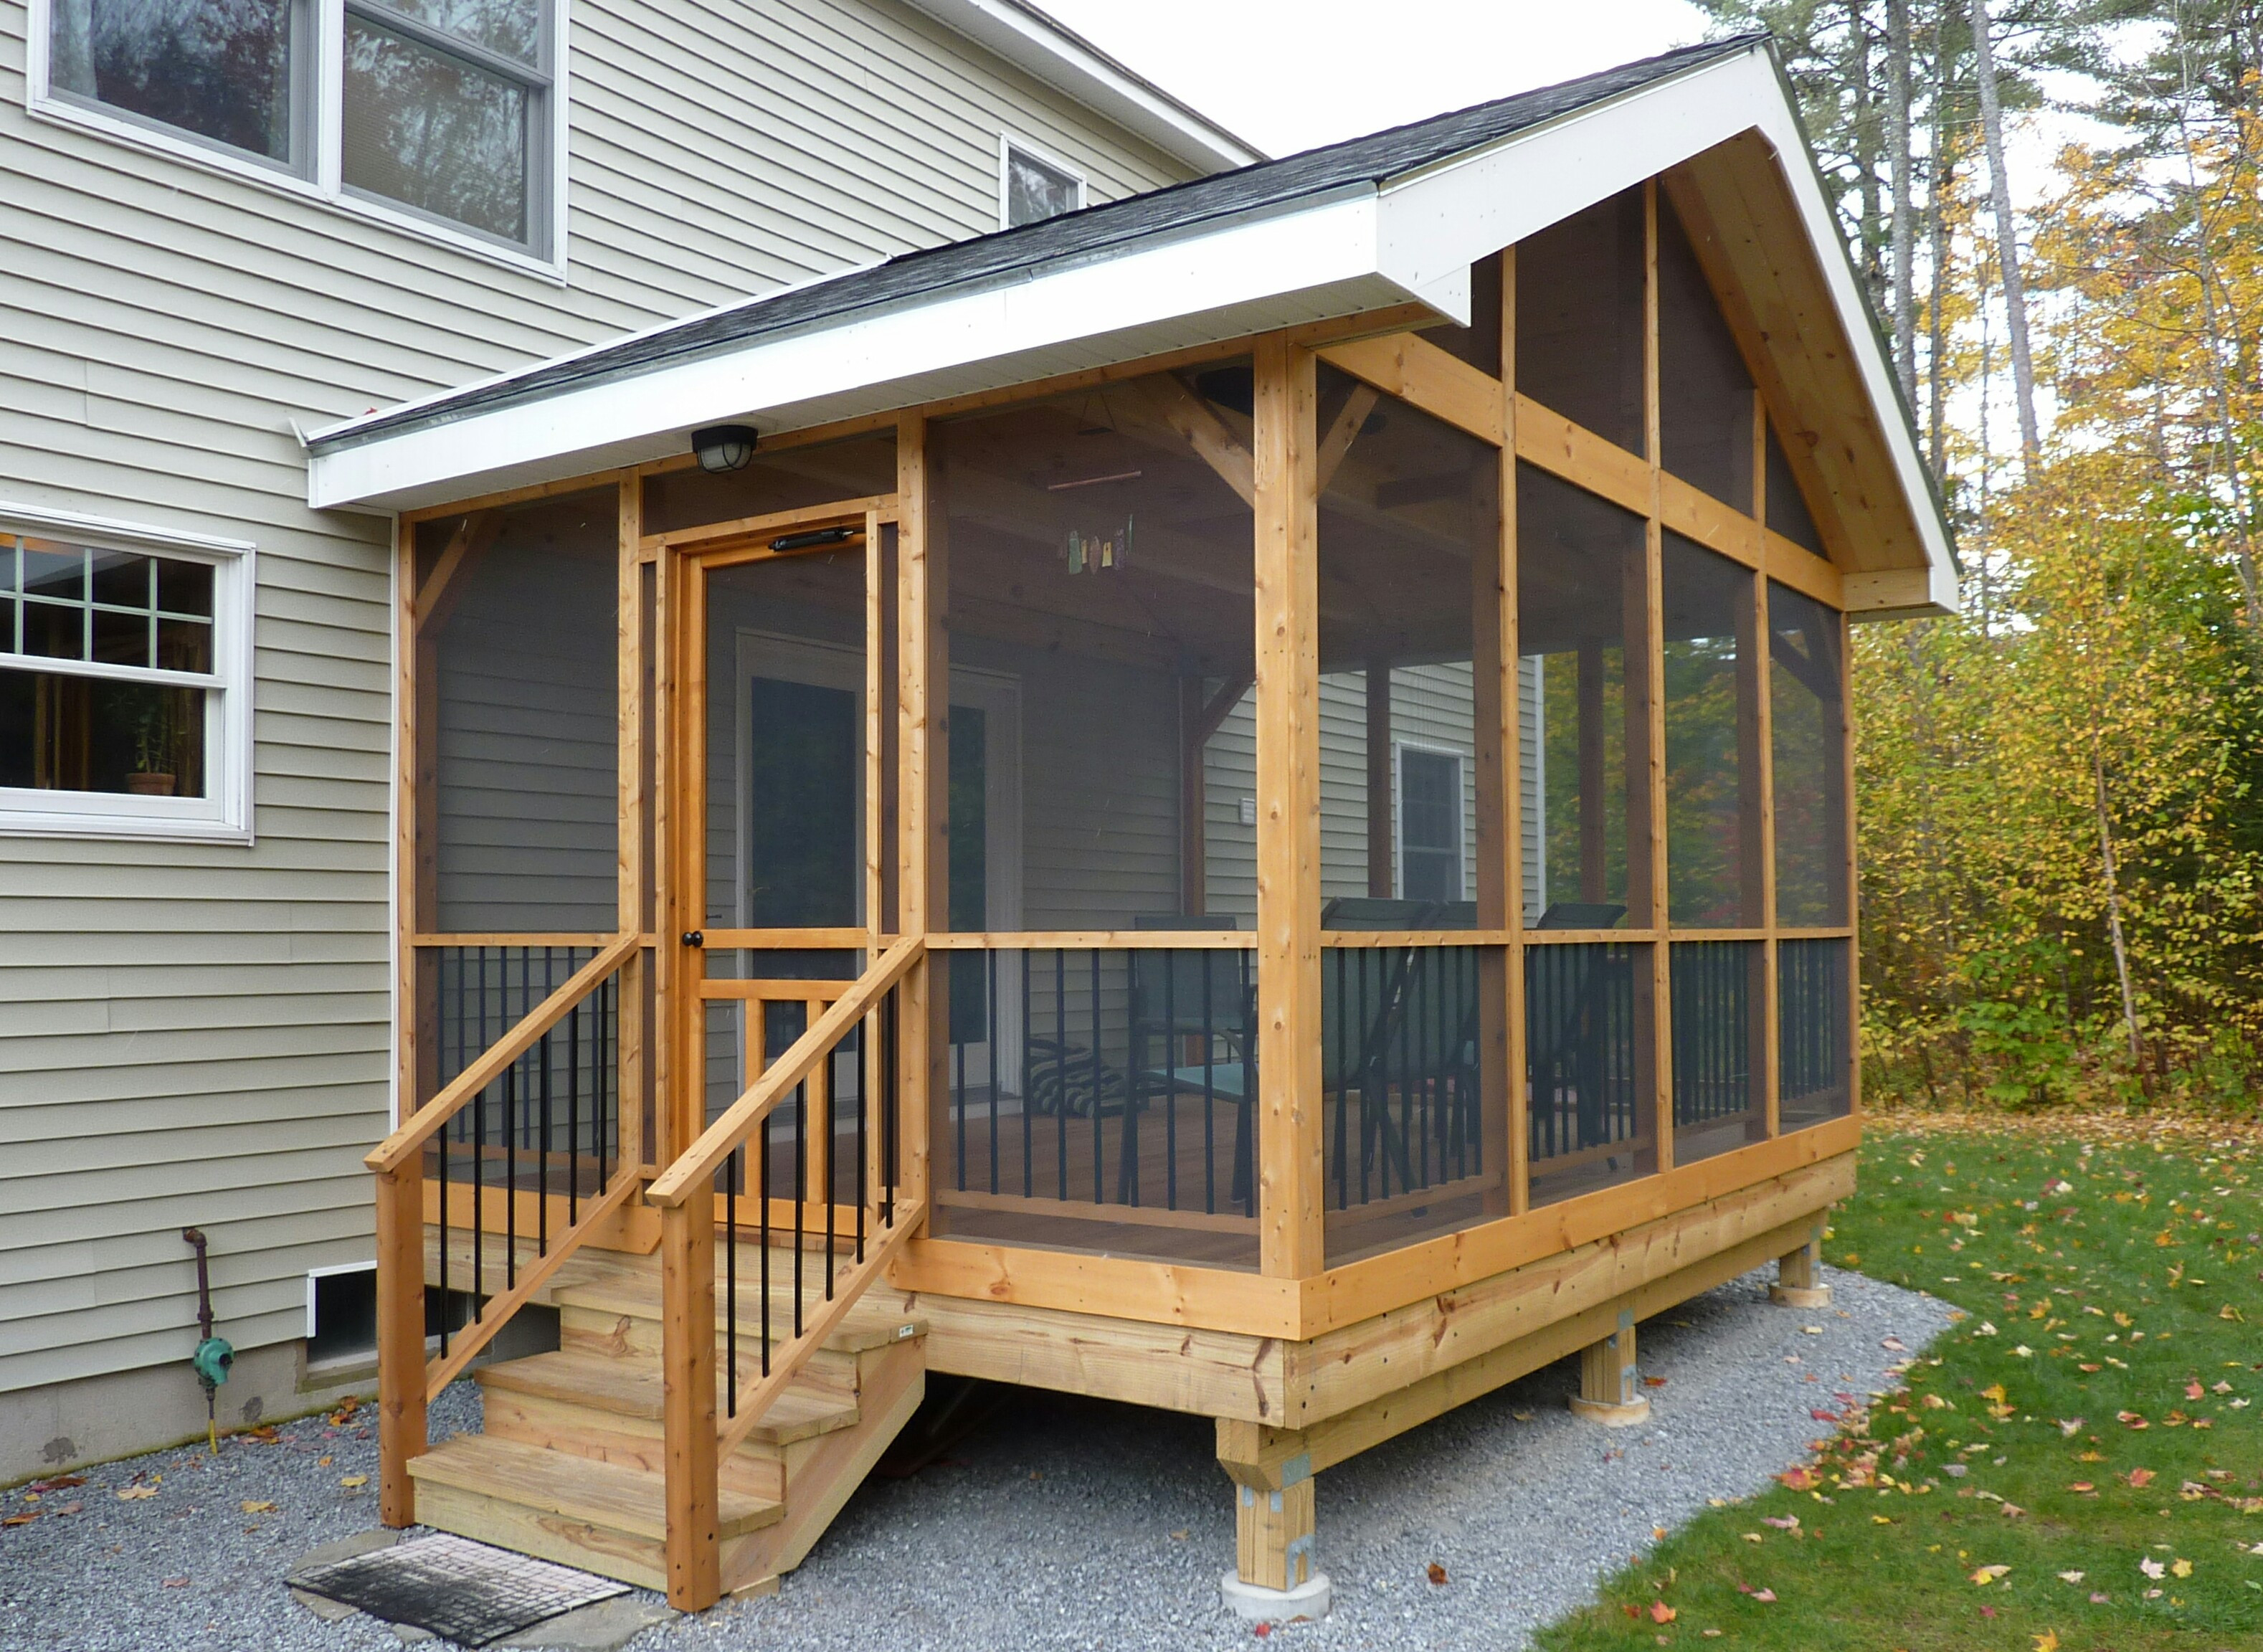 Best ideas about Screen In Patio . Save or Pin 15 DIY Screened In Porch Learn how to screen in a porch Now.